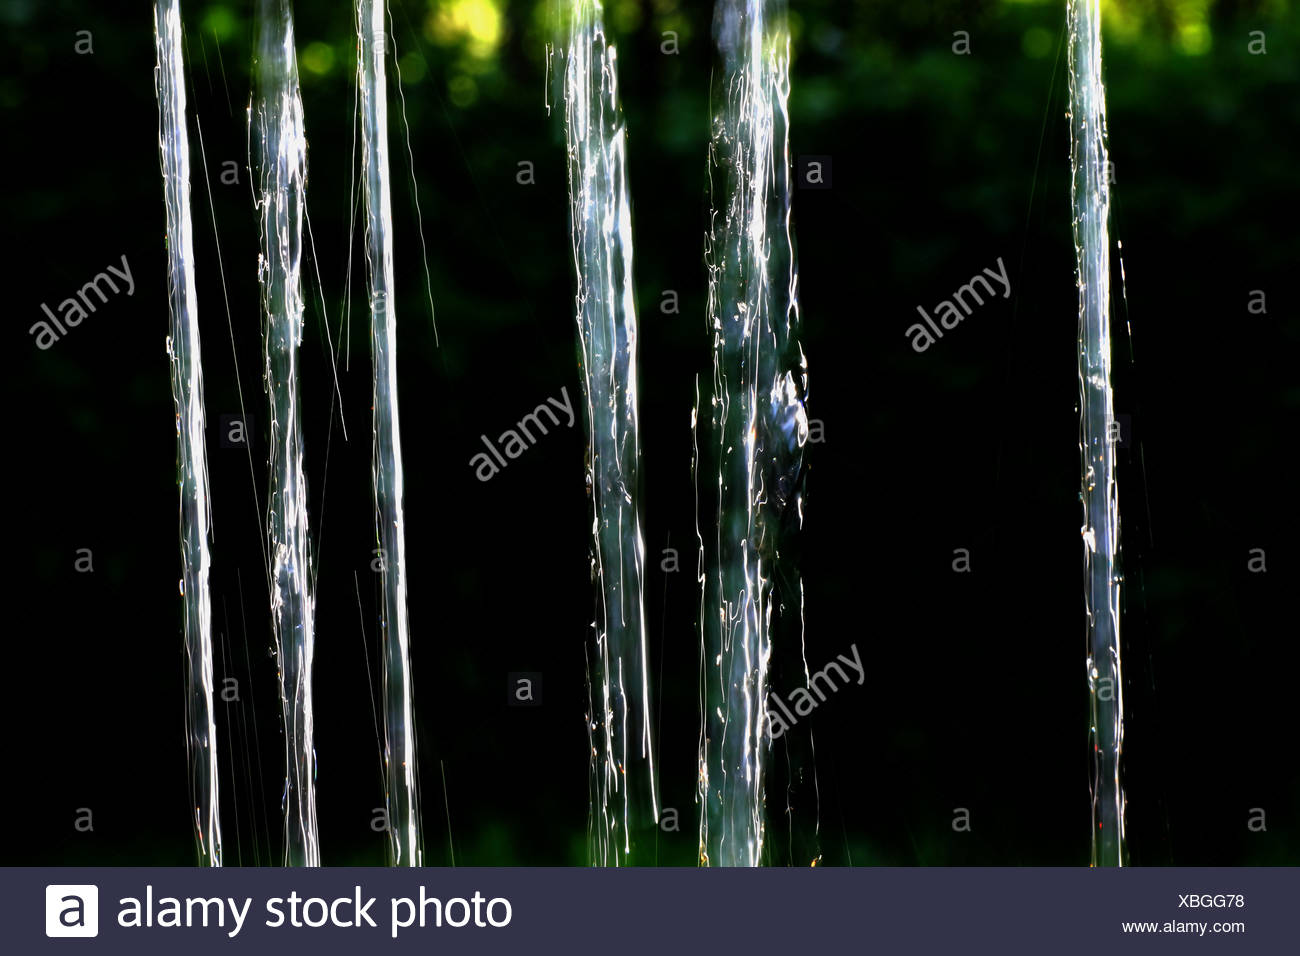 water Curtain - Stock Image